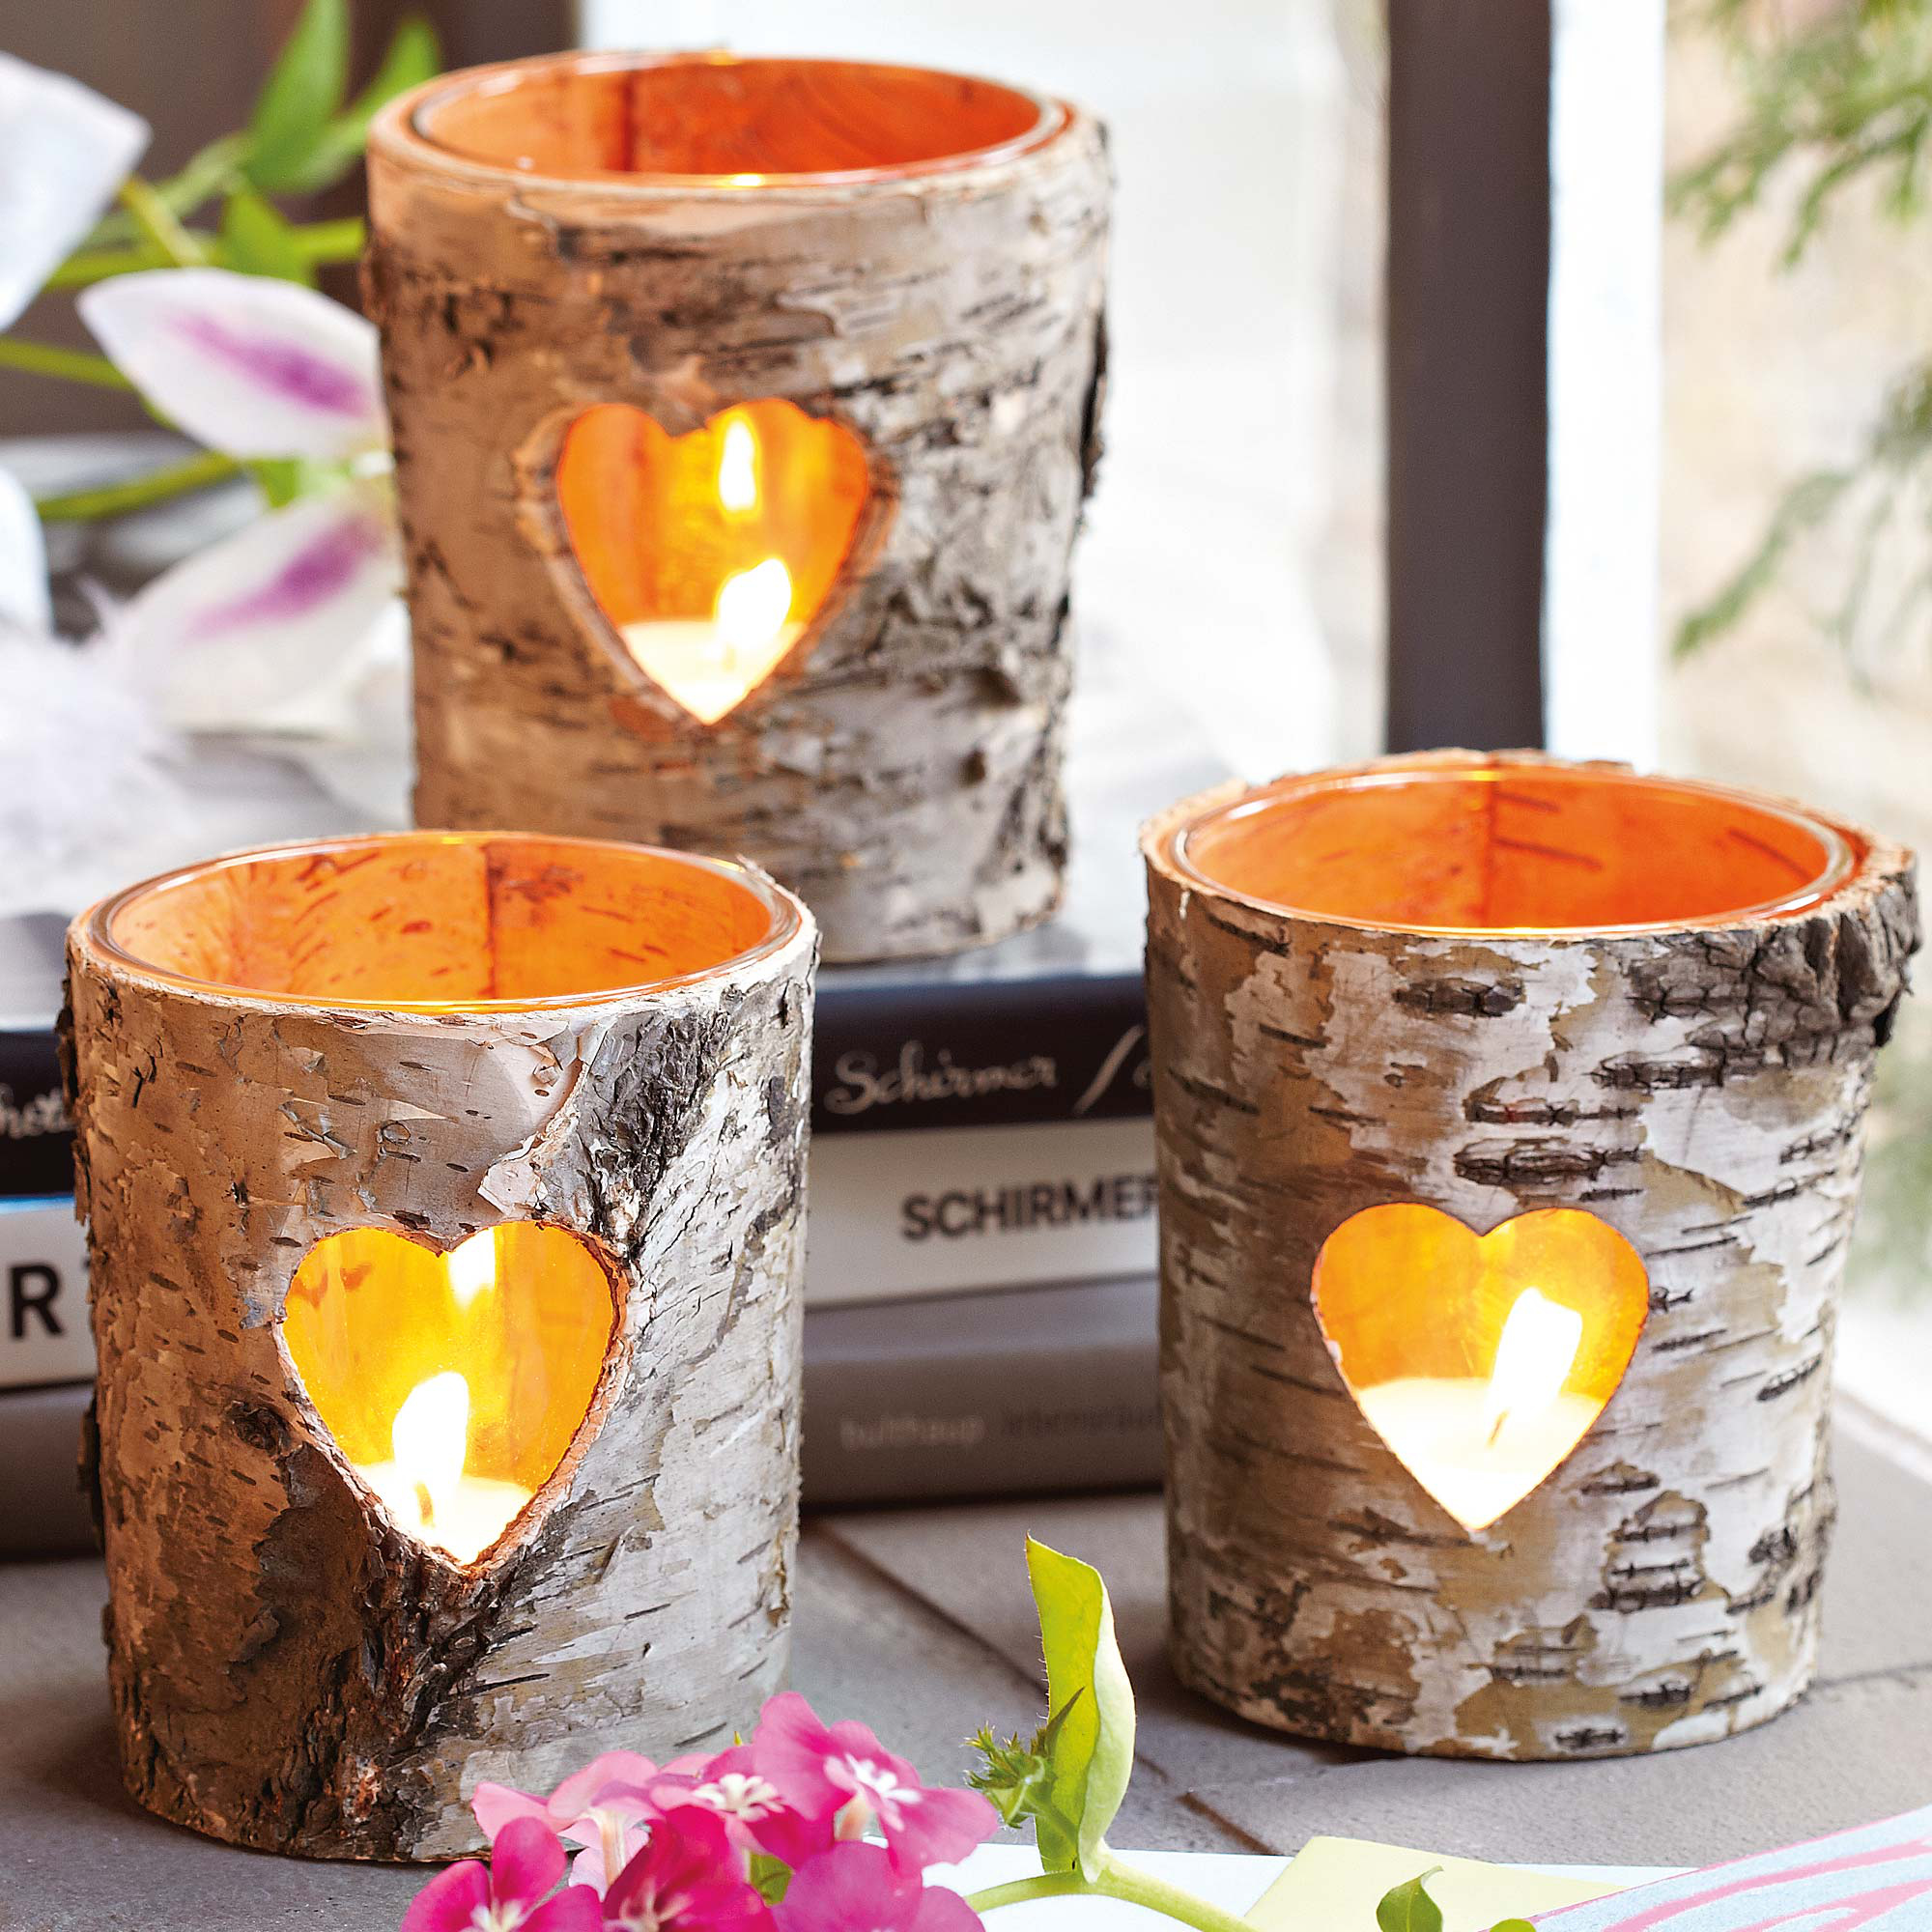 Design Diy Candle Holders 40 extremely clever diy candle holder projects for your home birch bark crafts and decorating ideas with rustic